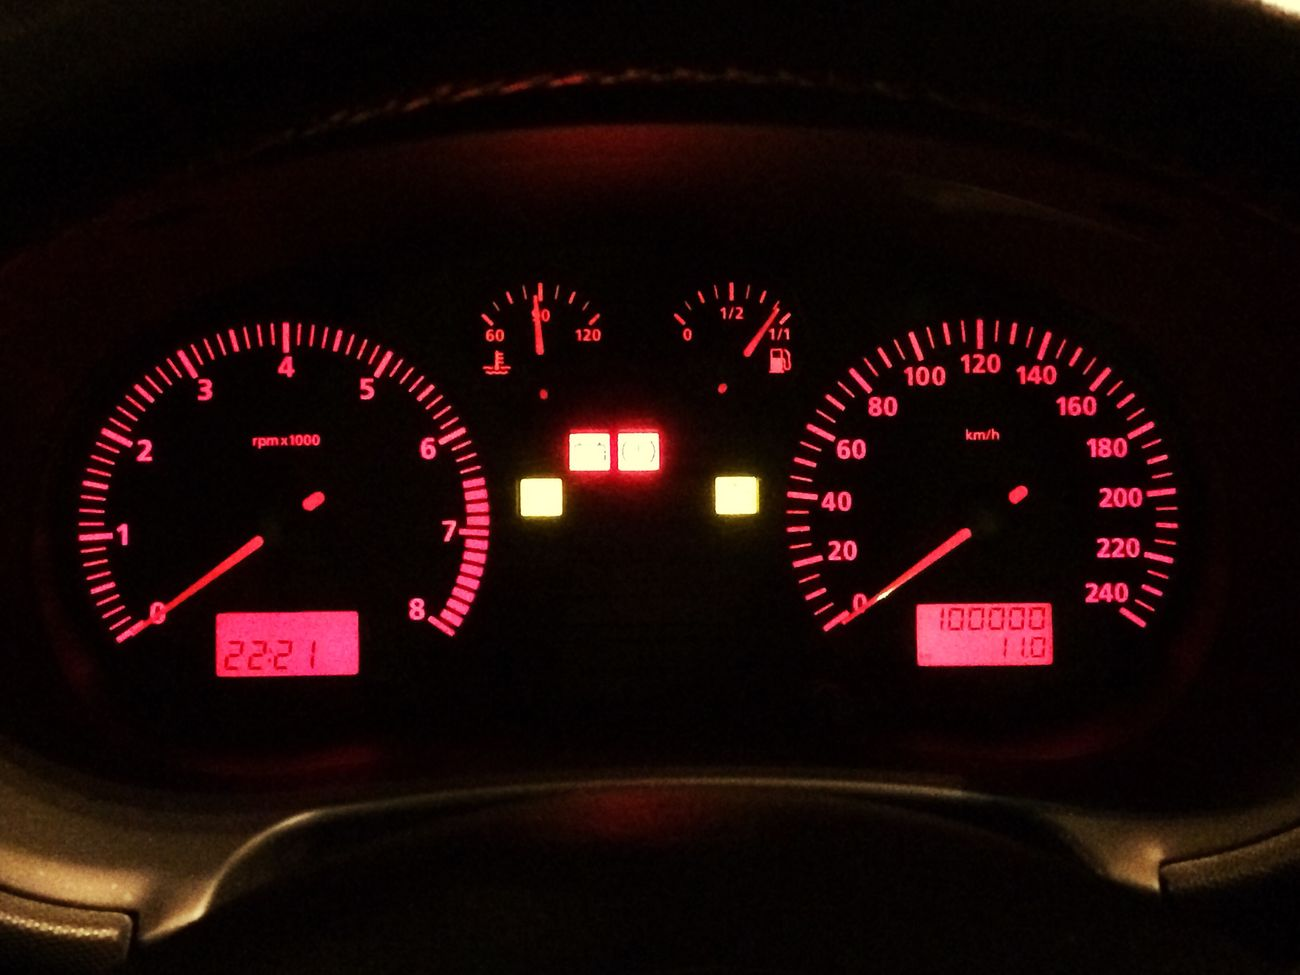 Dashboard Gauge Vehicle Interior Car Interior Transportation Speedometer Meter - Instrument Of Measurement Red Close-up Equipment Speed Land Vehicle Car Control Panel Illuminated Dial No People 100000km